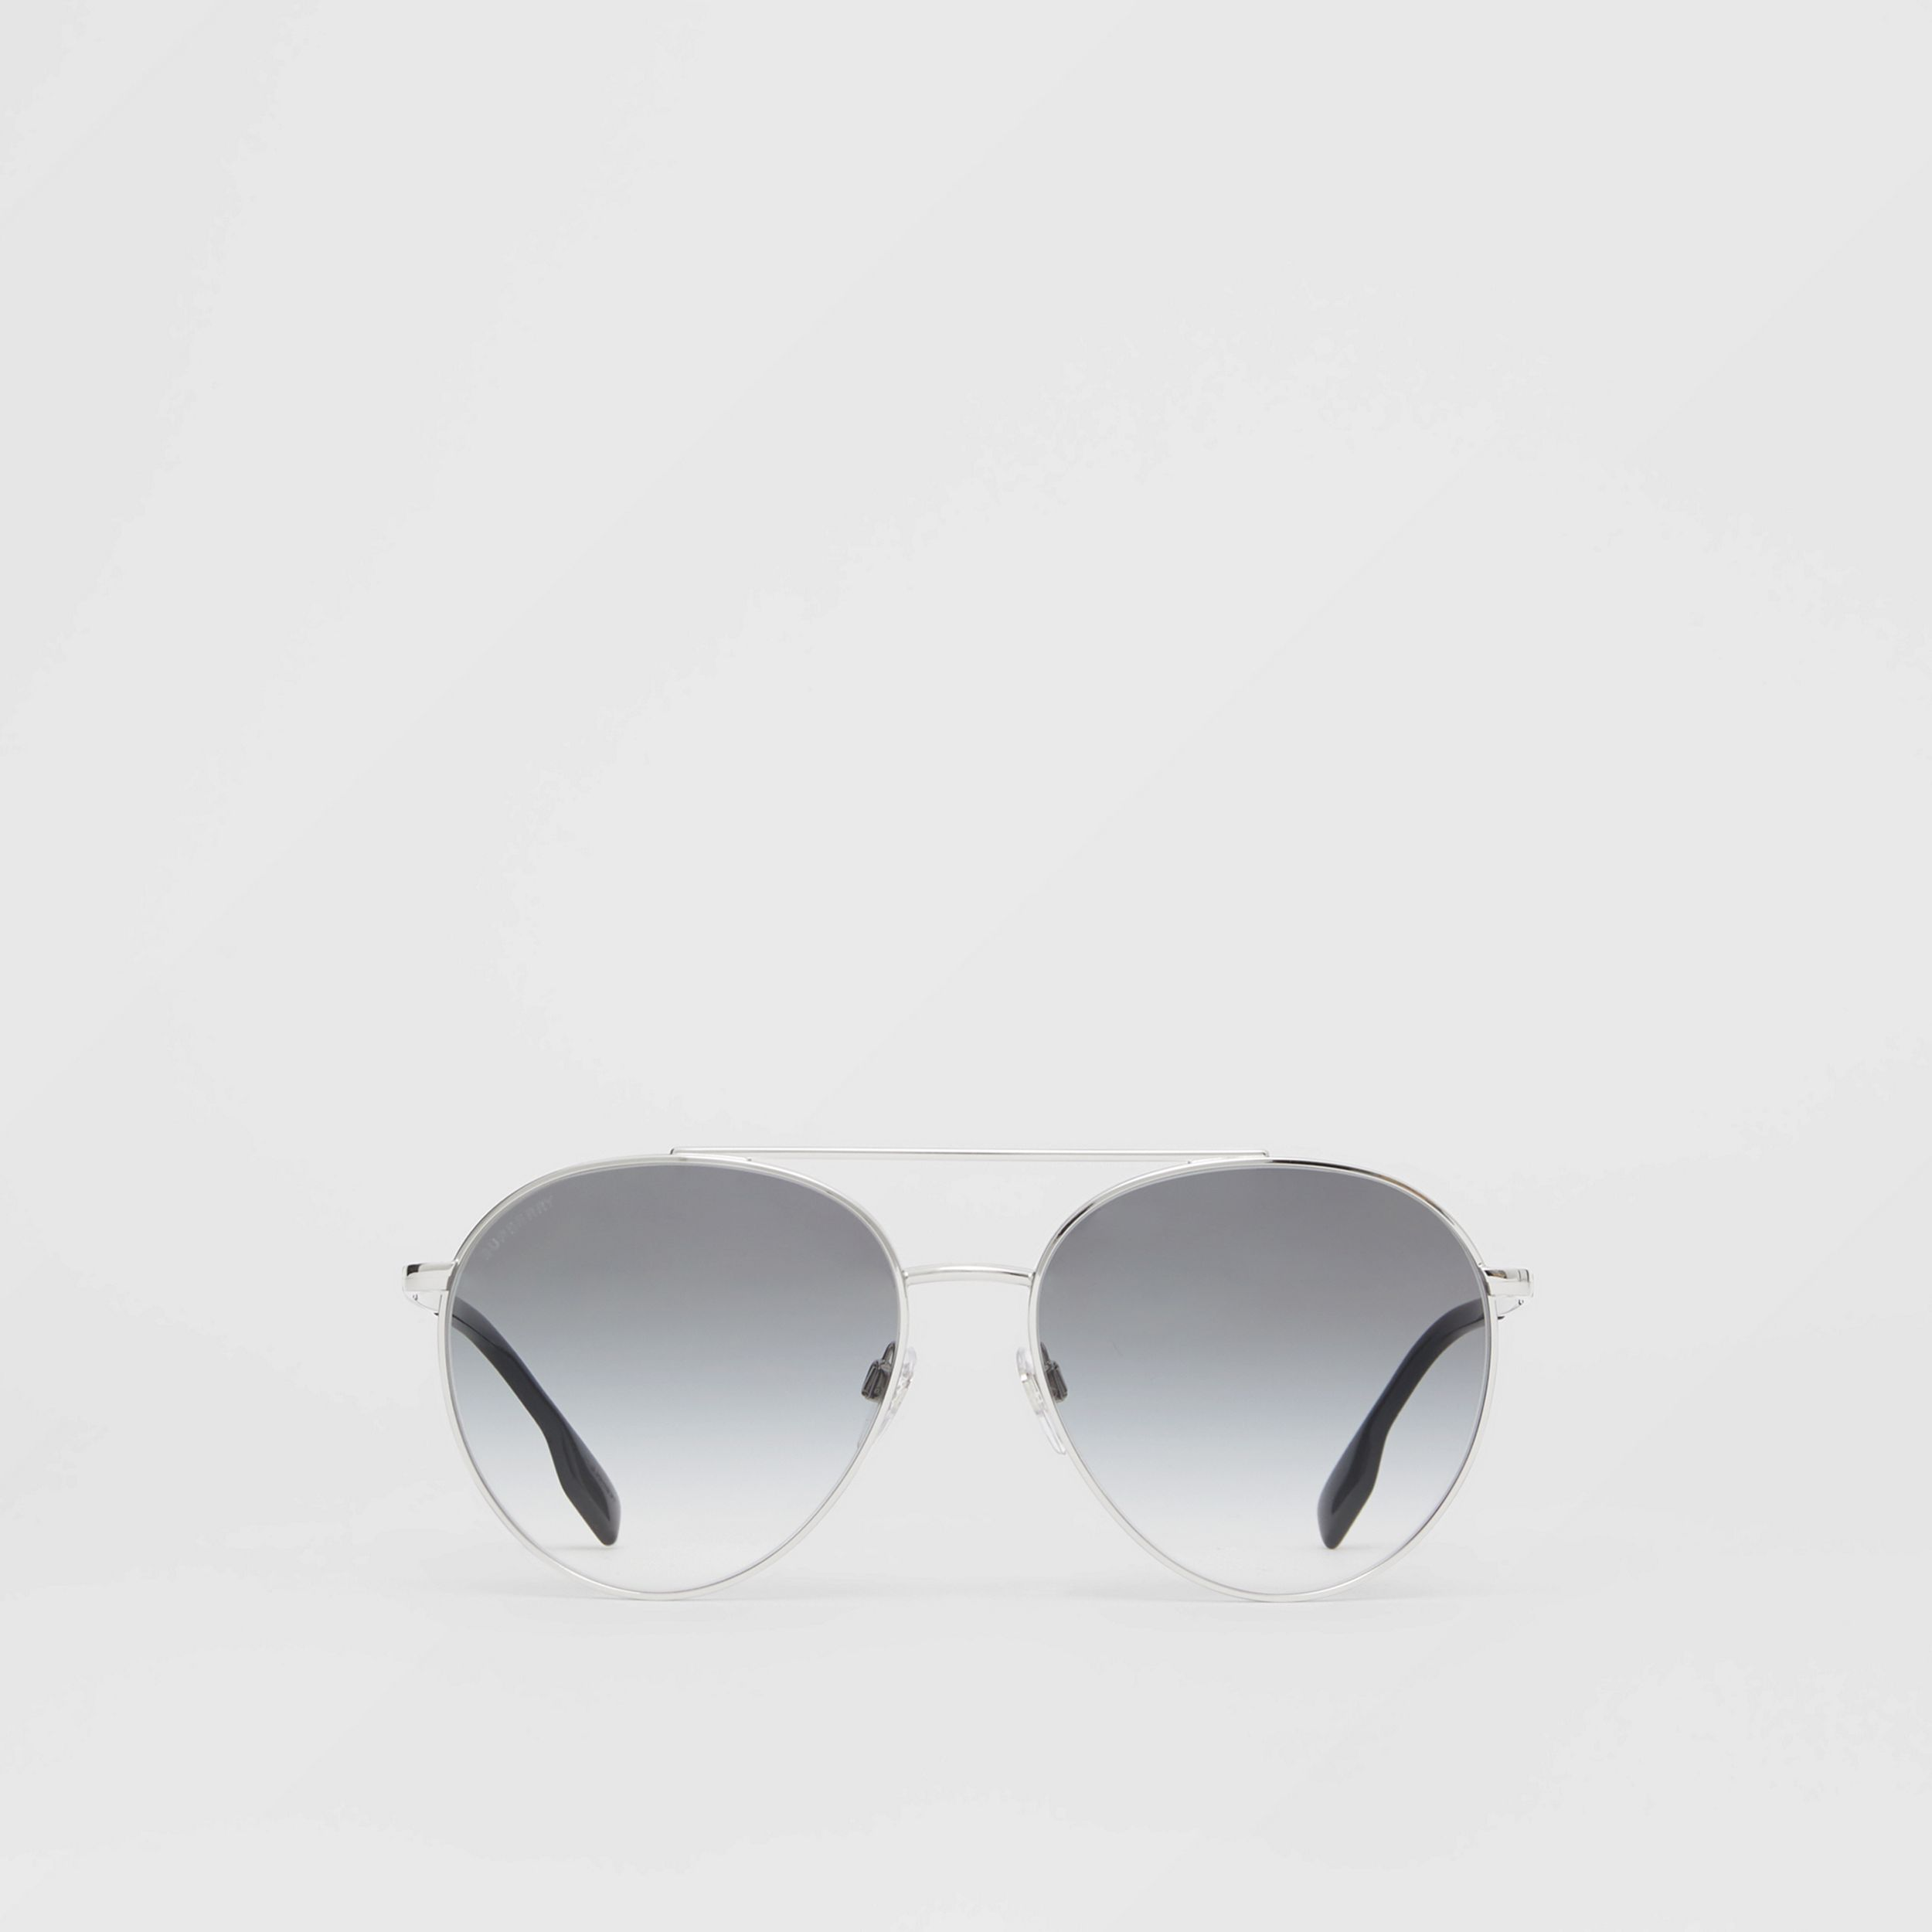 Pilot Sunglasses in Grey - Women | Burberry Australia - 1